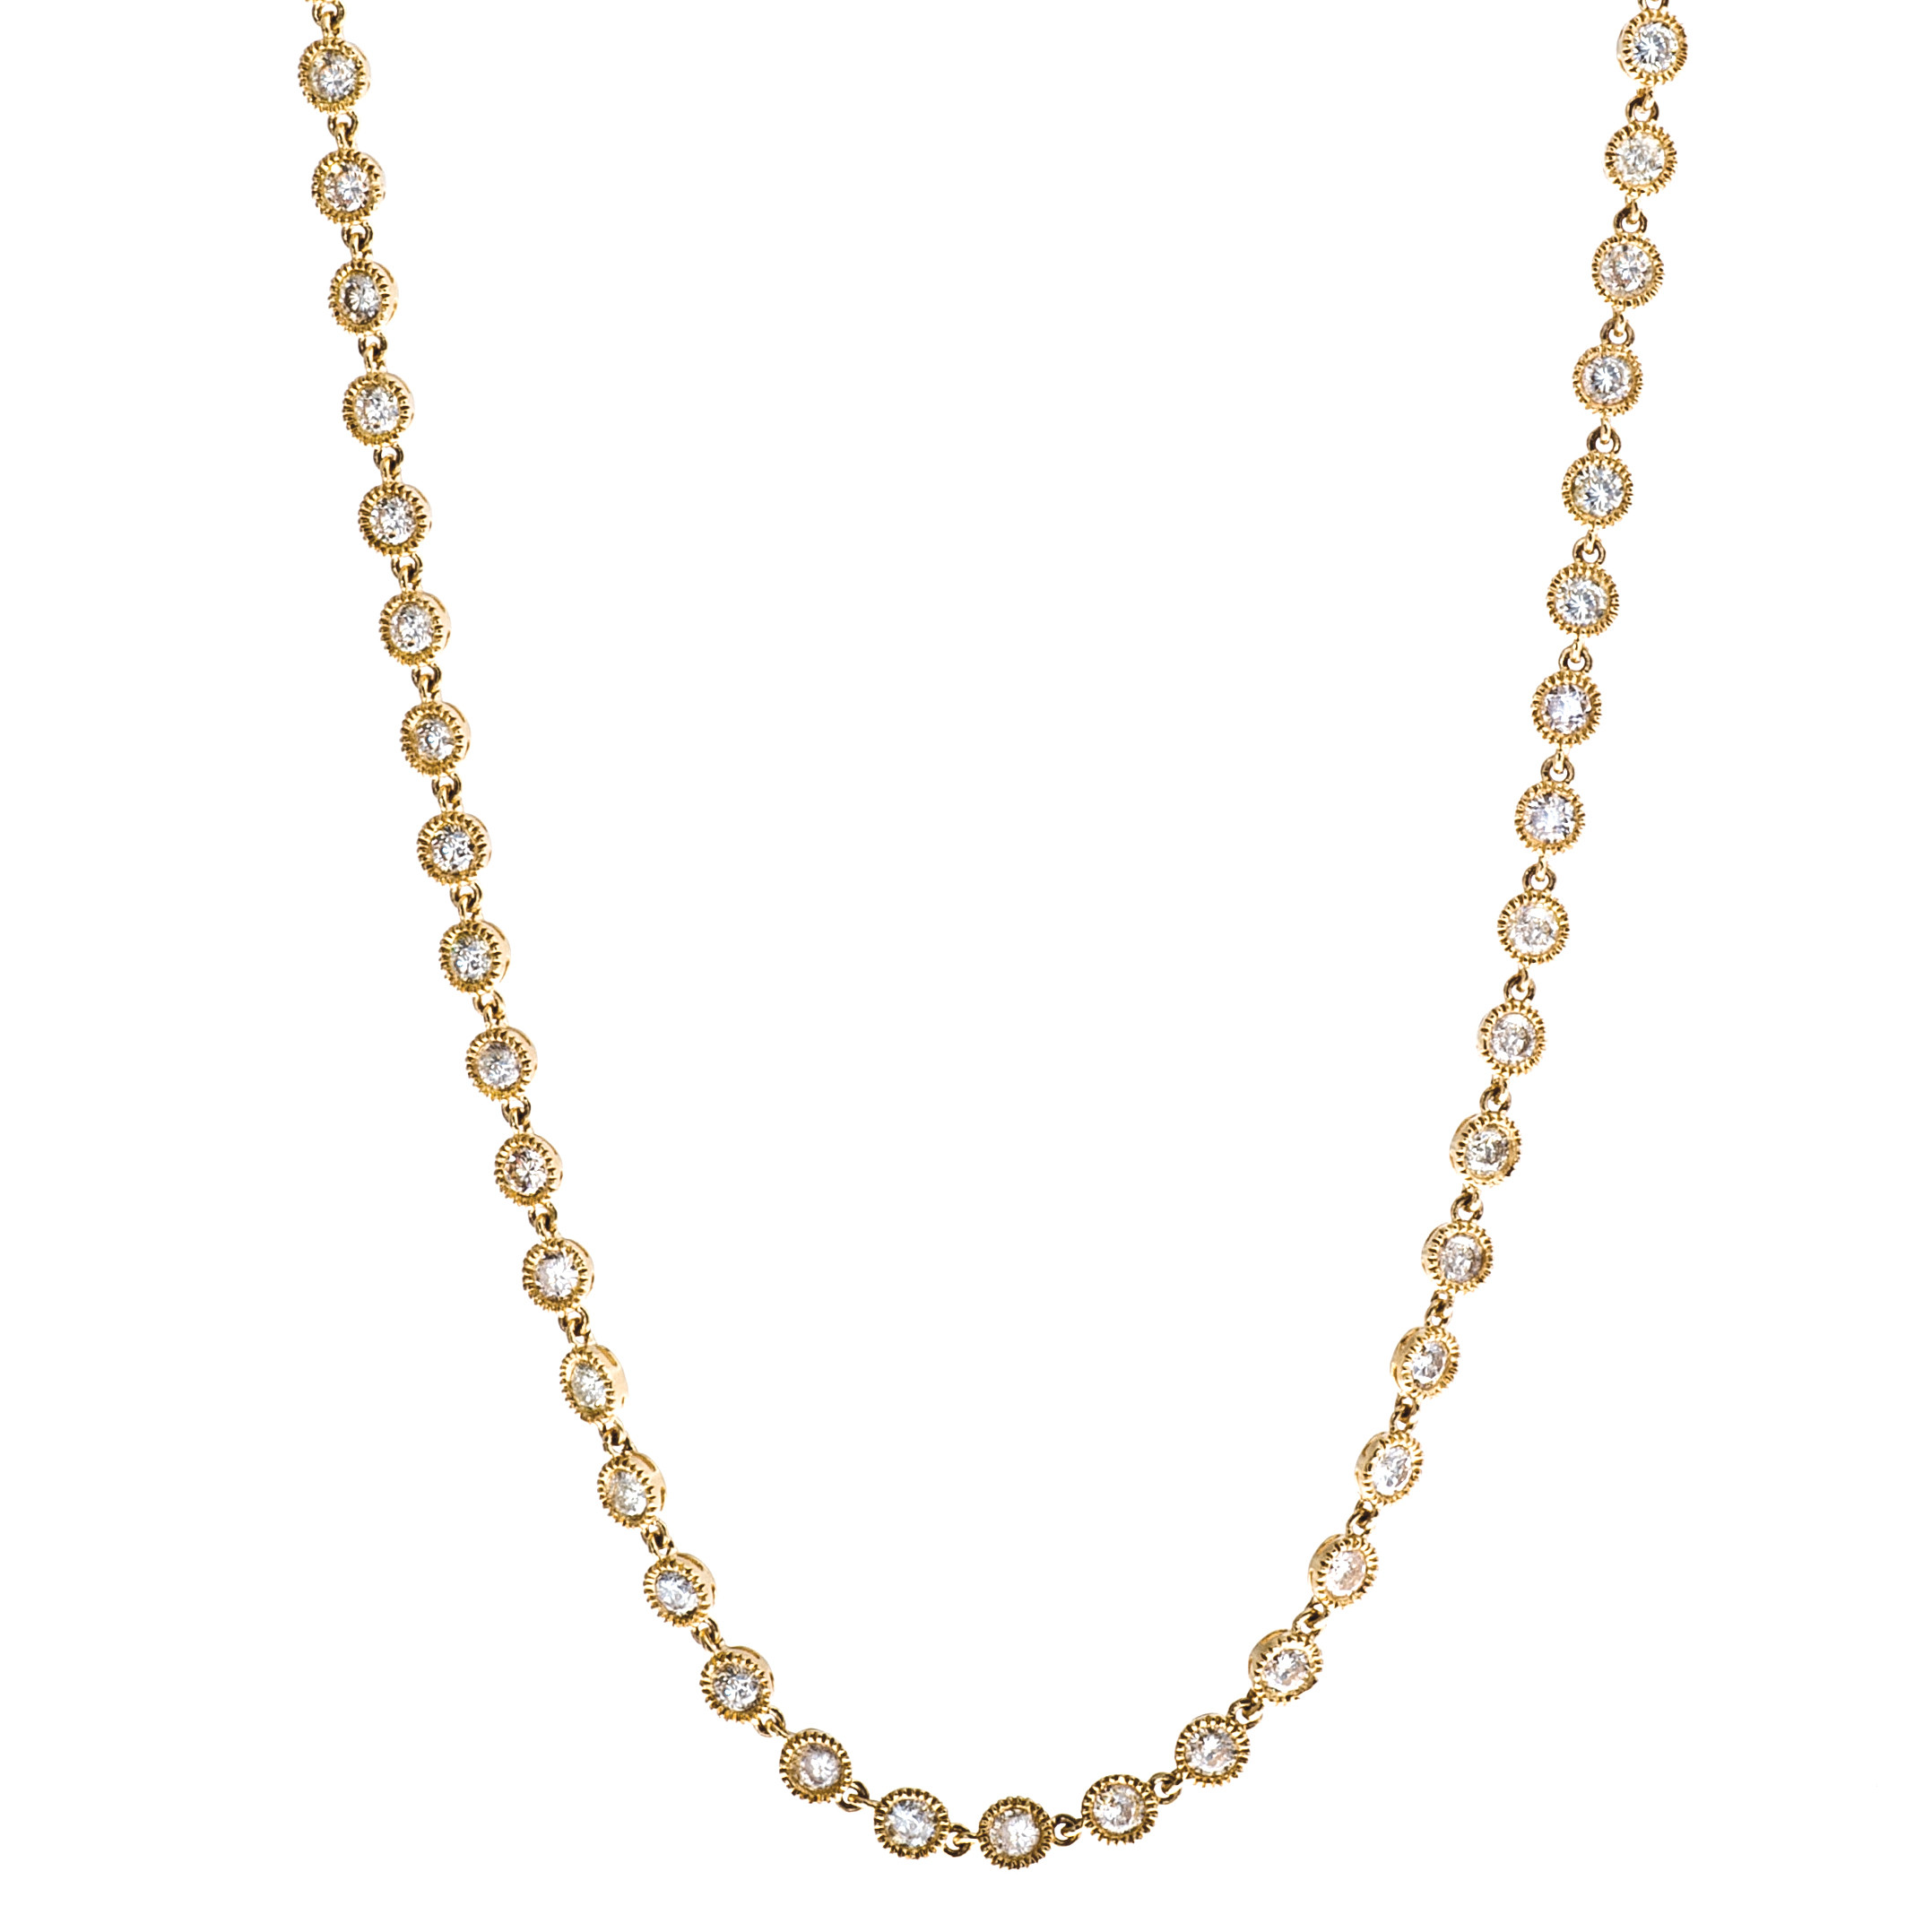 New 9.77 CTW Diamond Necklace